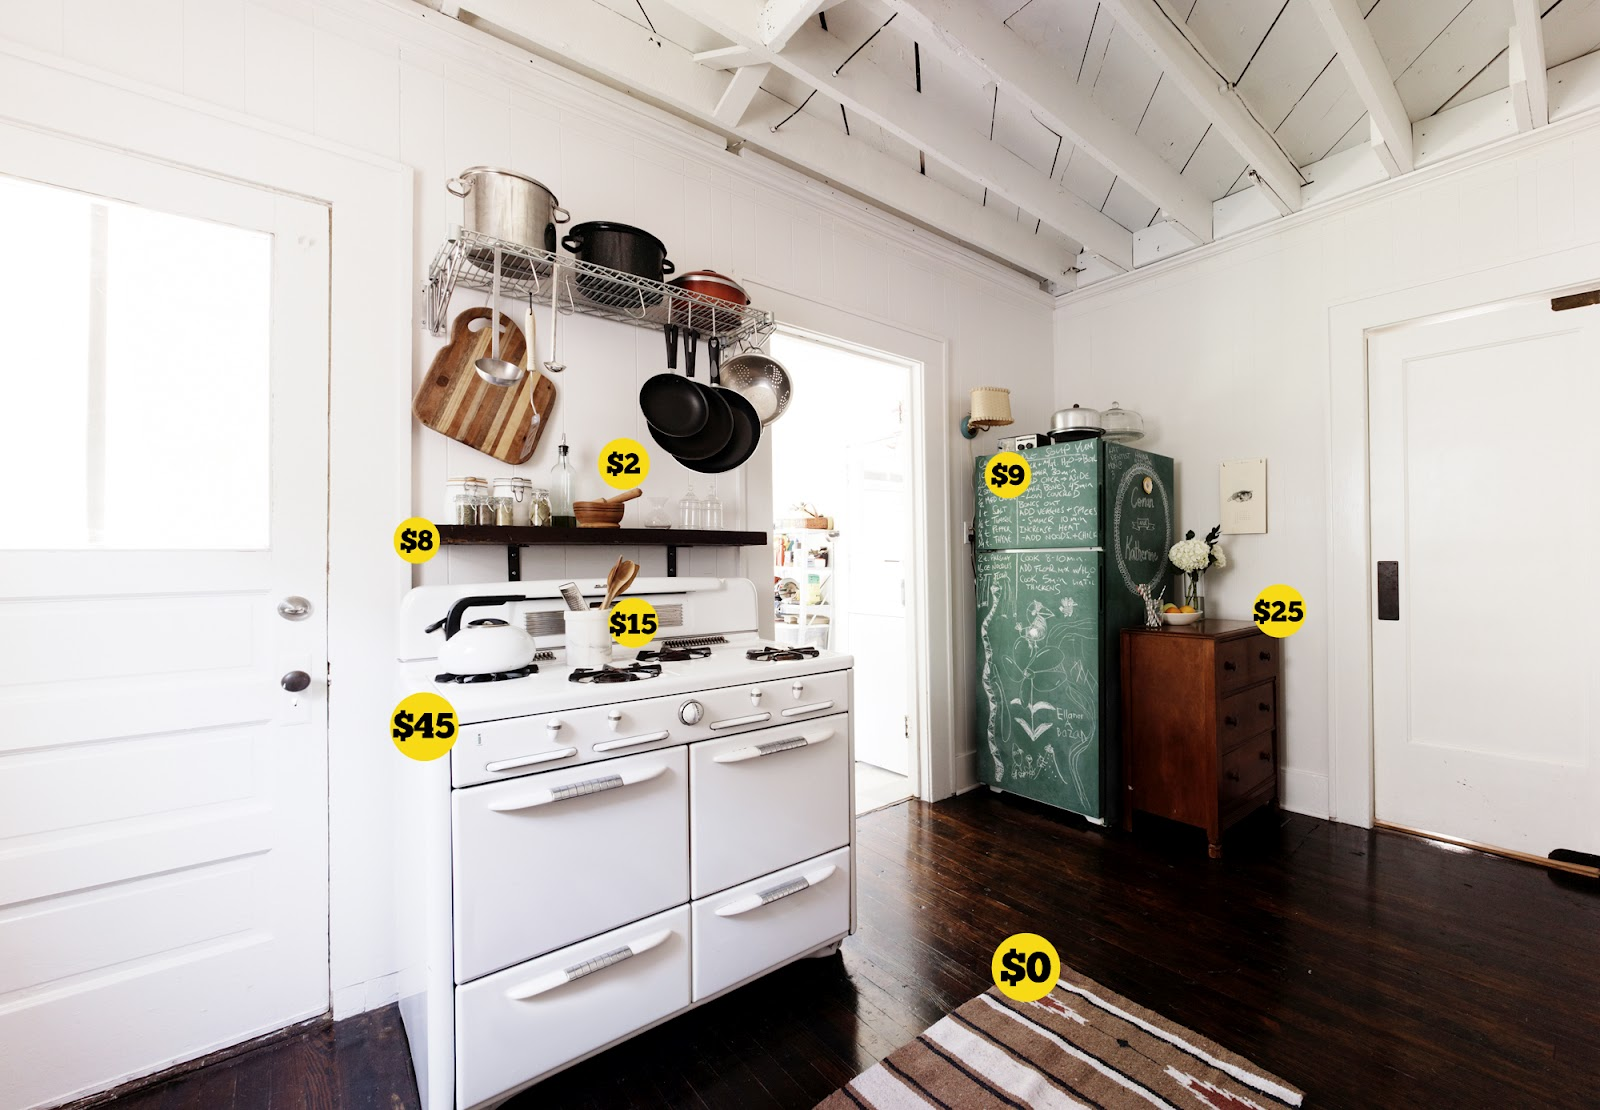 Home Depot Financing Kitchen Remodel Houston Keep Smiling Accidental The Price Tag